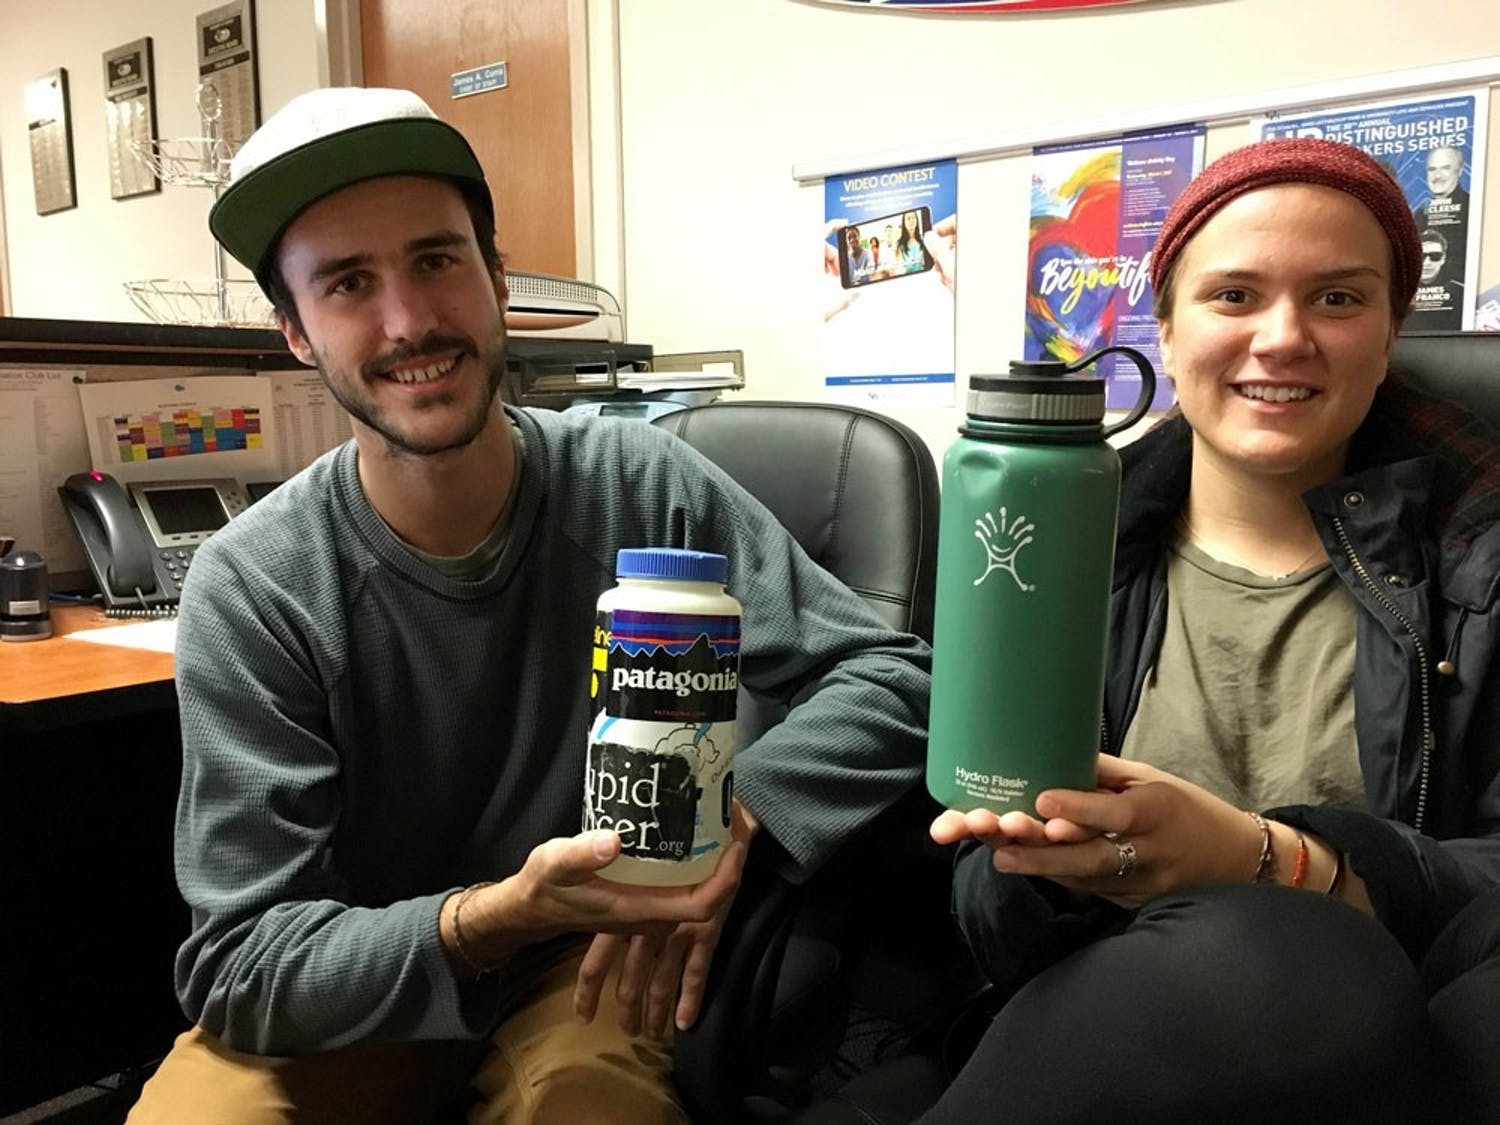 Brian Johnson and Anna Heintzman are members of UB's Outdoor Adventure Club. Johnson and Heintzman take pride in personalizing their reusable water bottles.